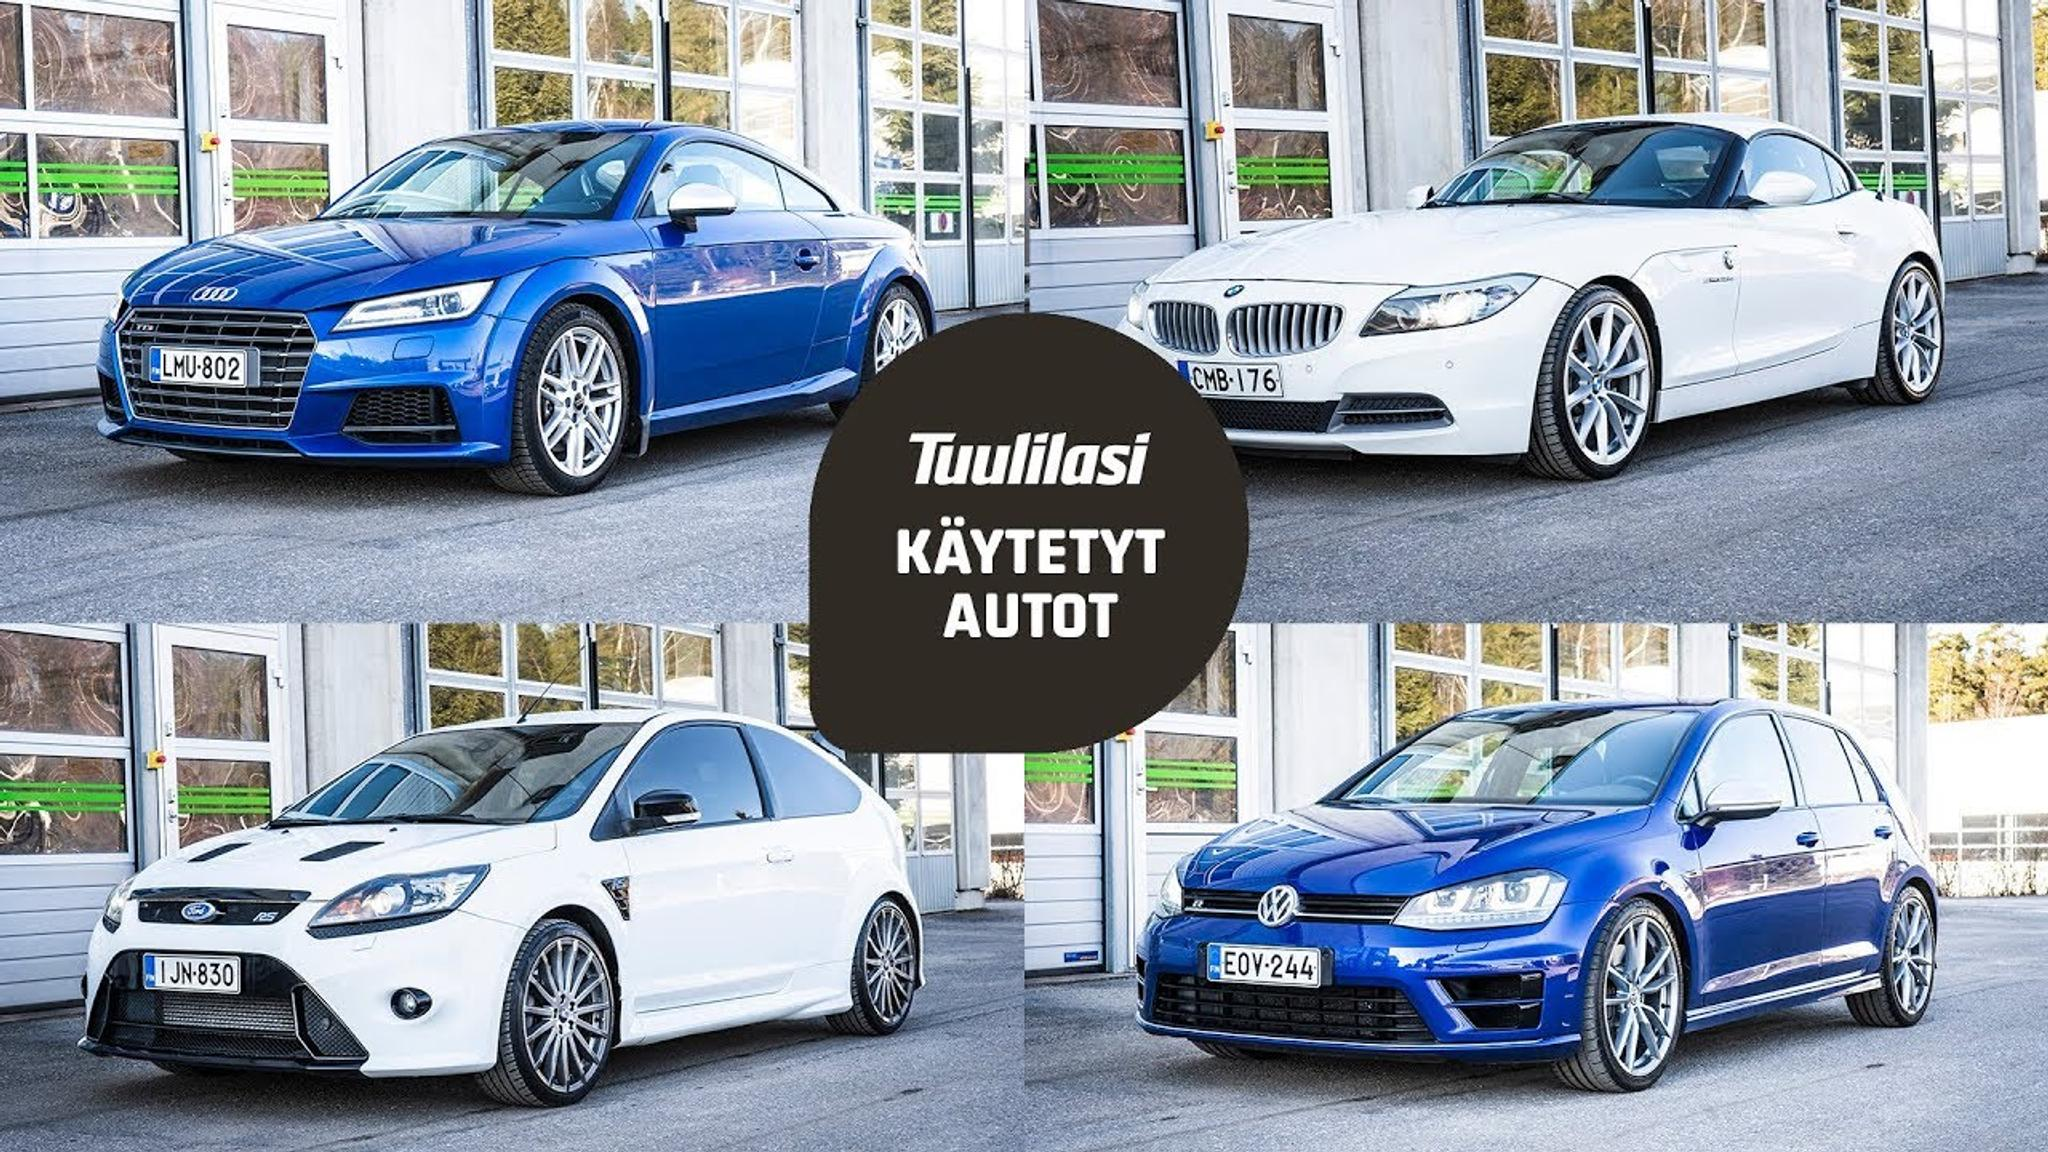 Ford Focus Rs Vs St >> Kaytetyt Sportit Audi Tts Vw Golf R Bmw Z4 Ford Focus Rs Tuulilasi